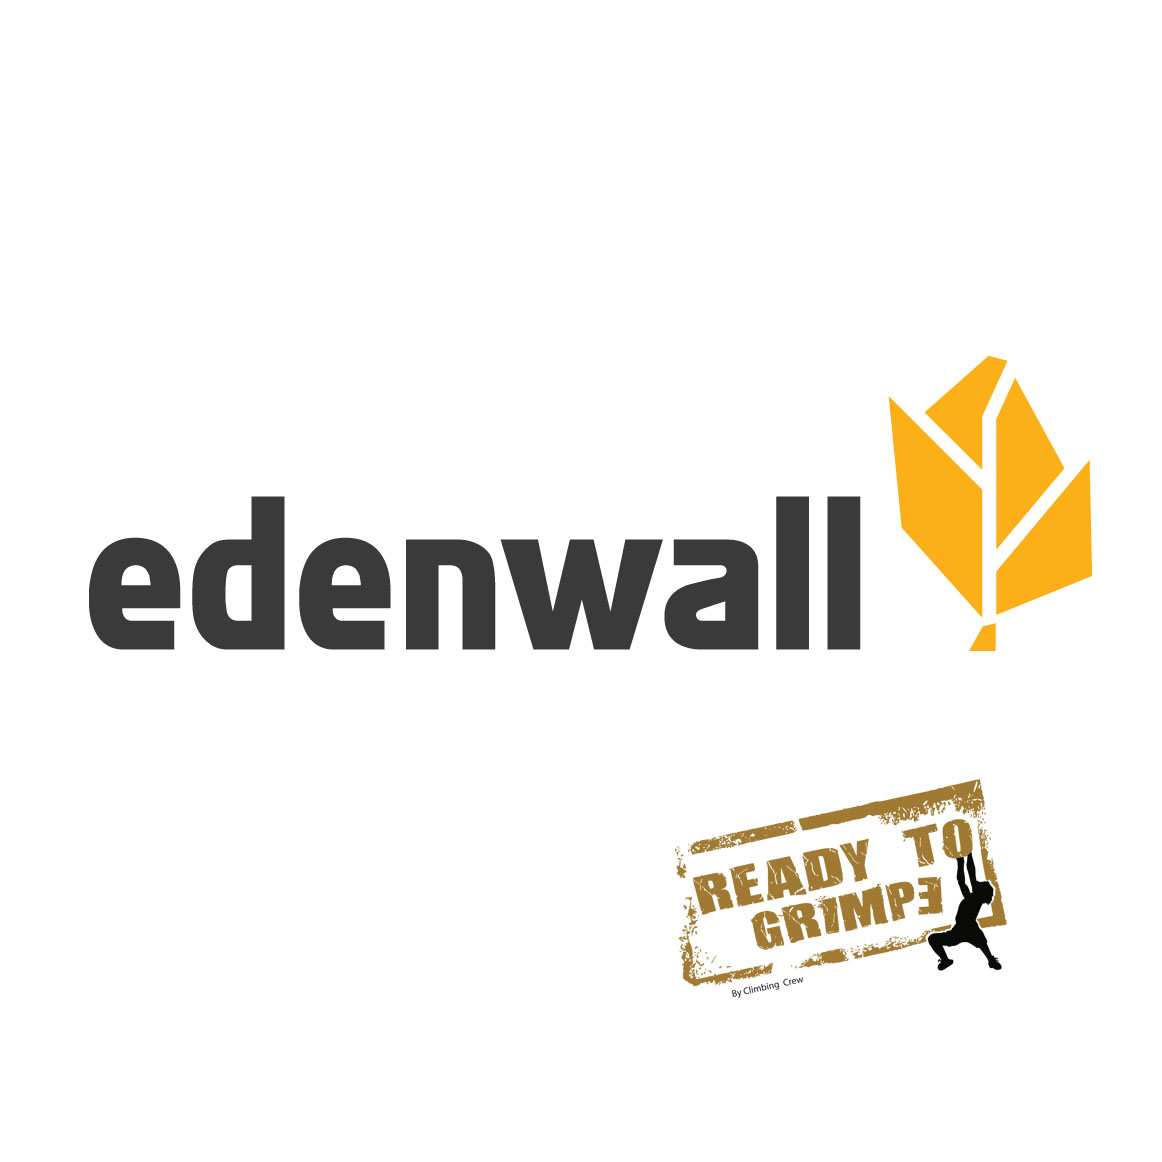 EDENWALL - READY TO GRIMPE